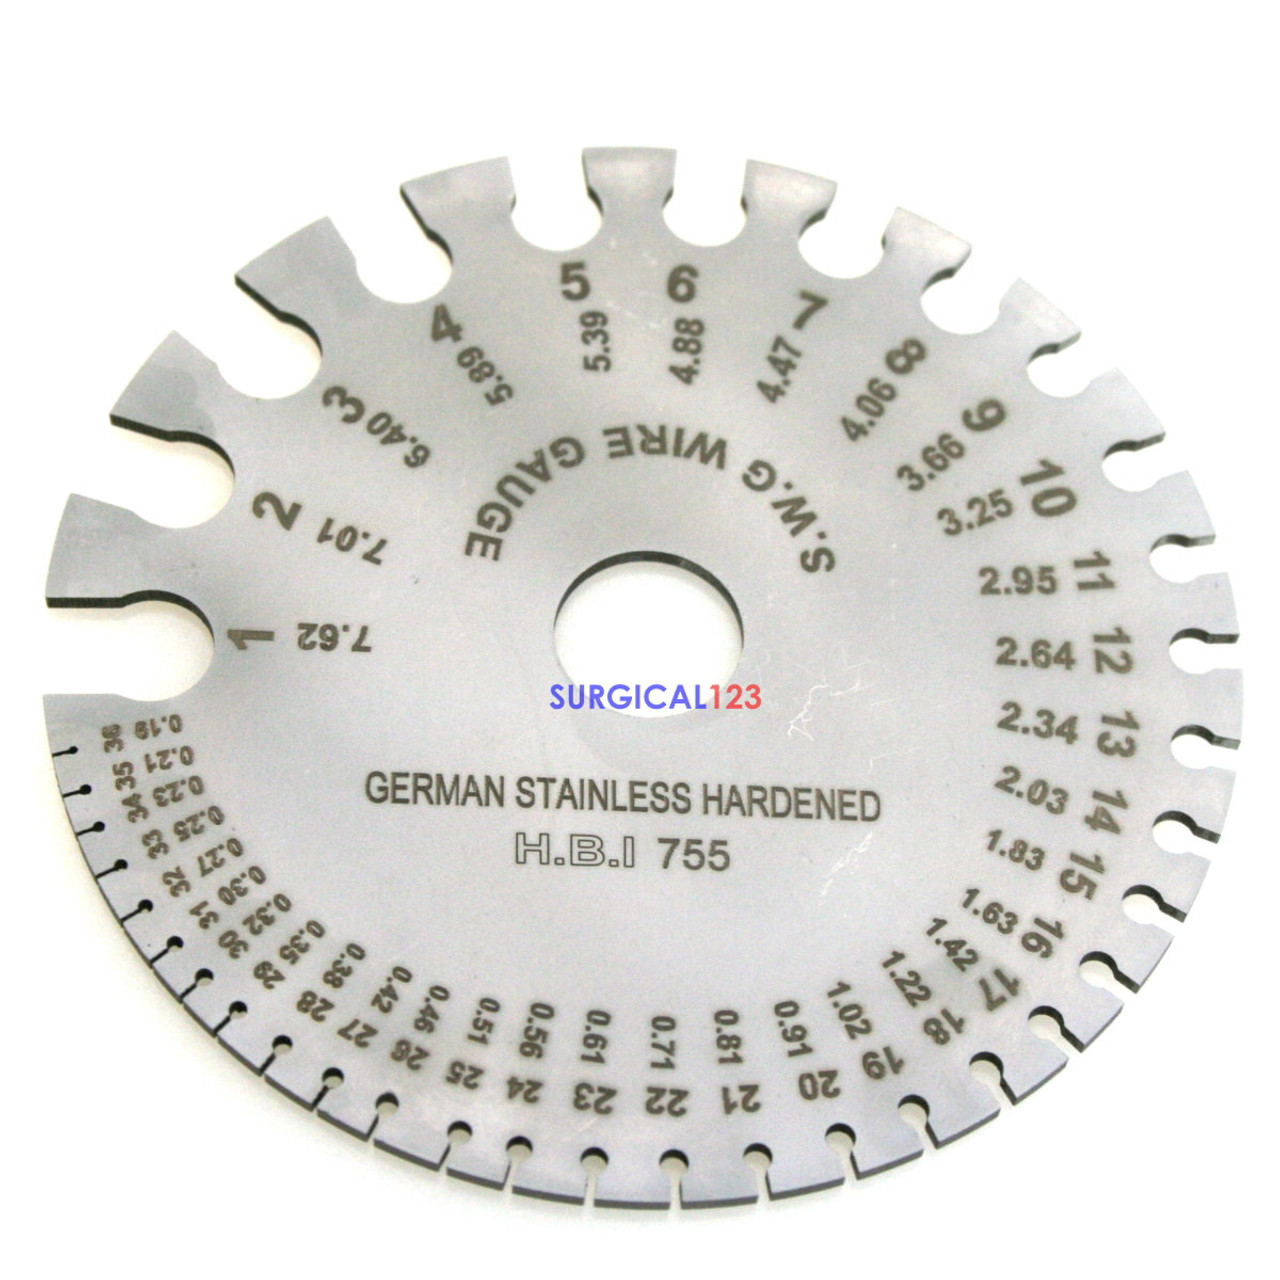 Wire gauge in mm free download wiring diagram wire gauge graduated in 1 36 french 0 19 to 7 62mm surgical123 com as well as wire gauge to mm conversion chart additionally wire gauge graduated in 1 36 nvjuhfo Choice Image